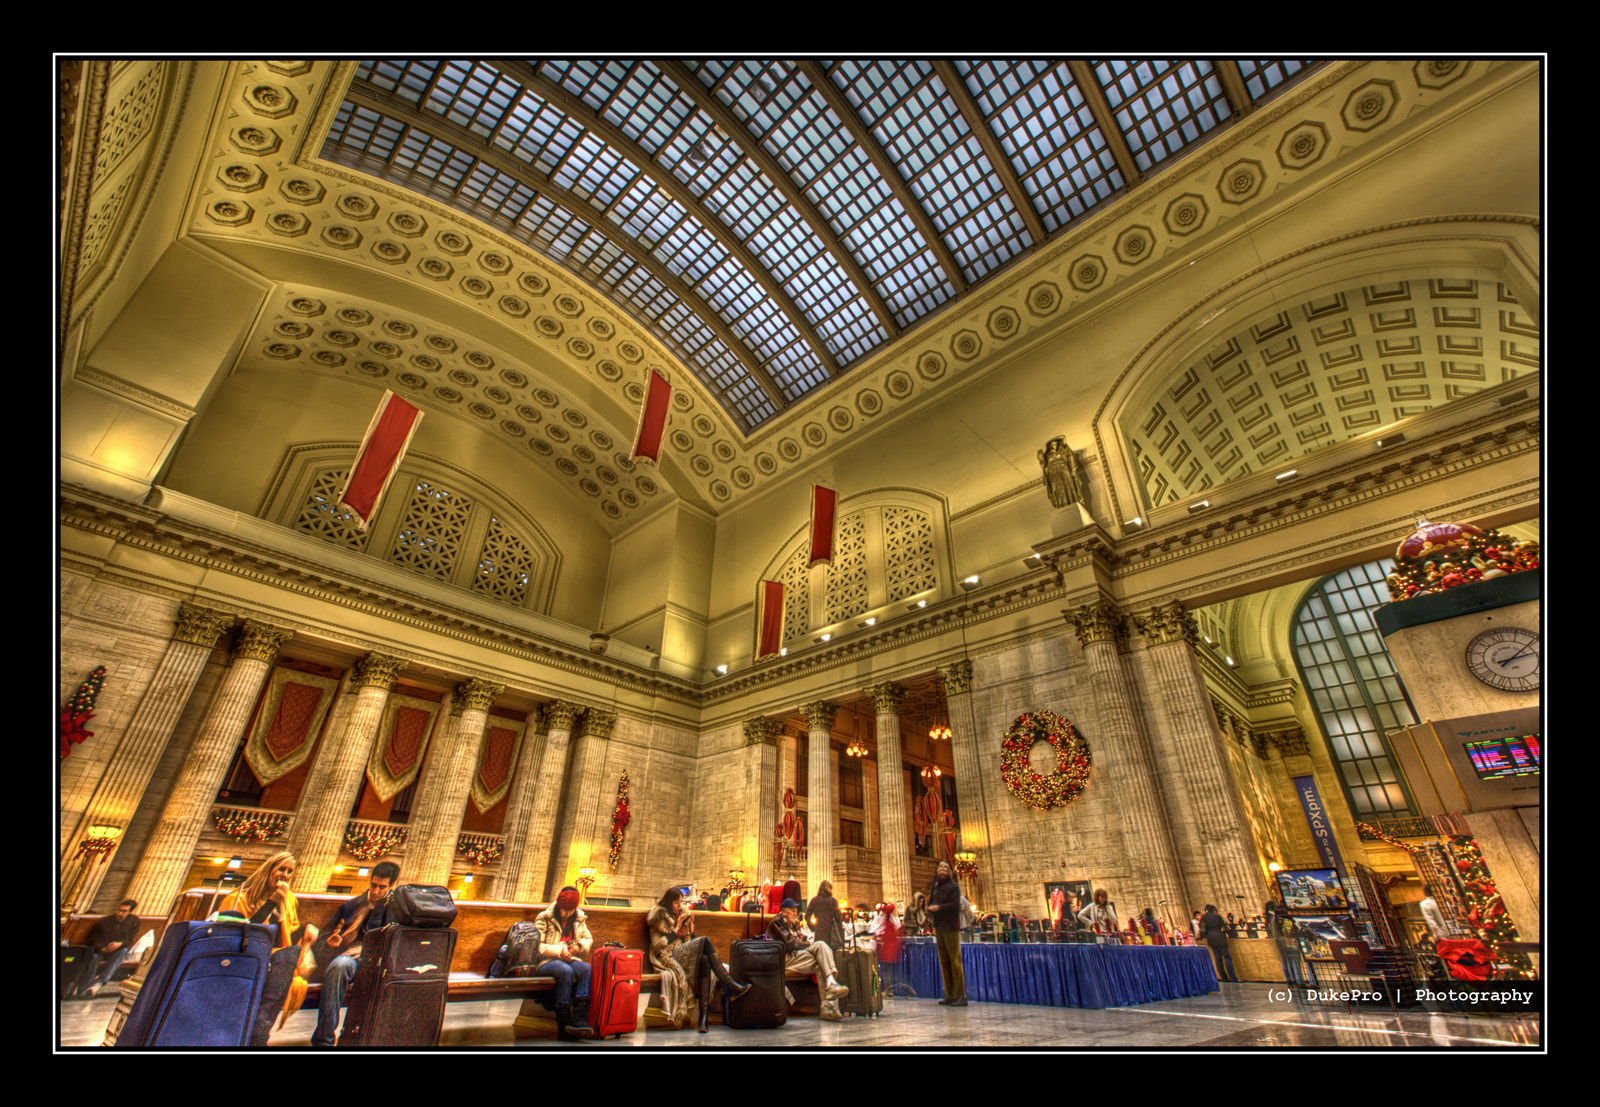 Photograph Chicago Union Station [HDR] by DukePro Studio on 500px